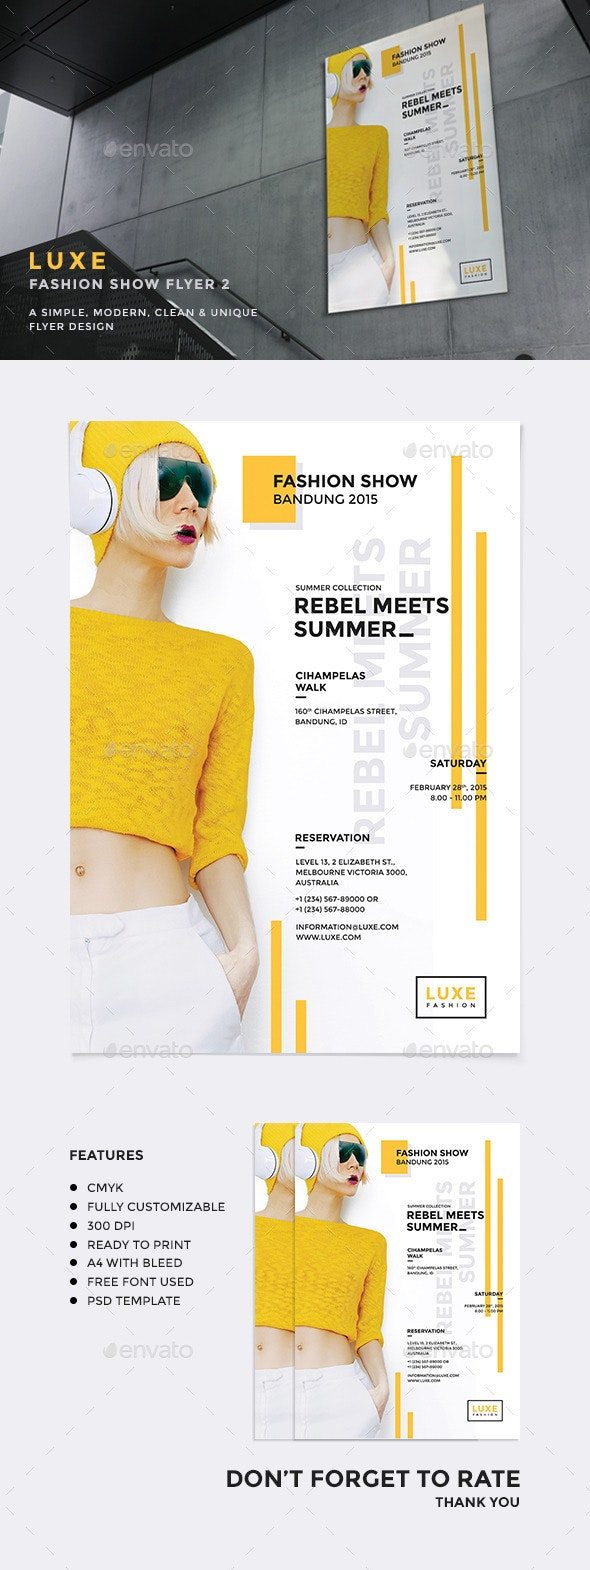 Luxe - Fashion Show Flyer v2 - Events Flyers